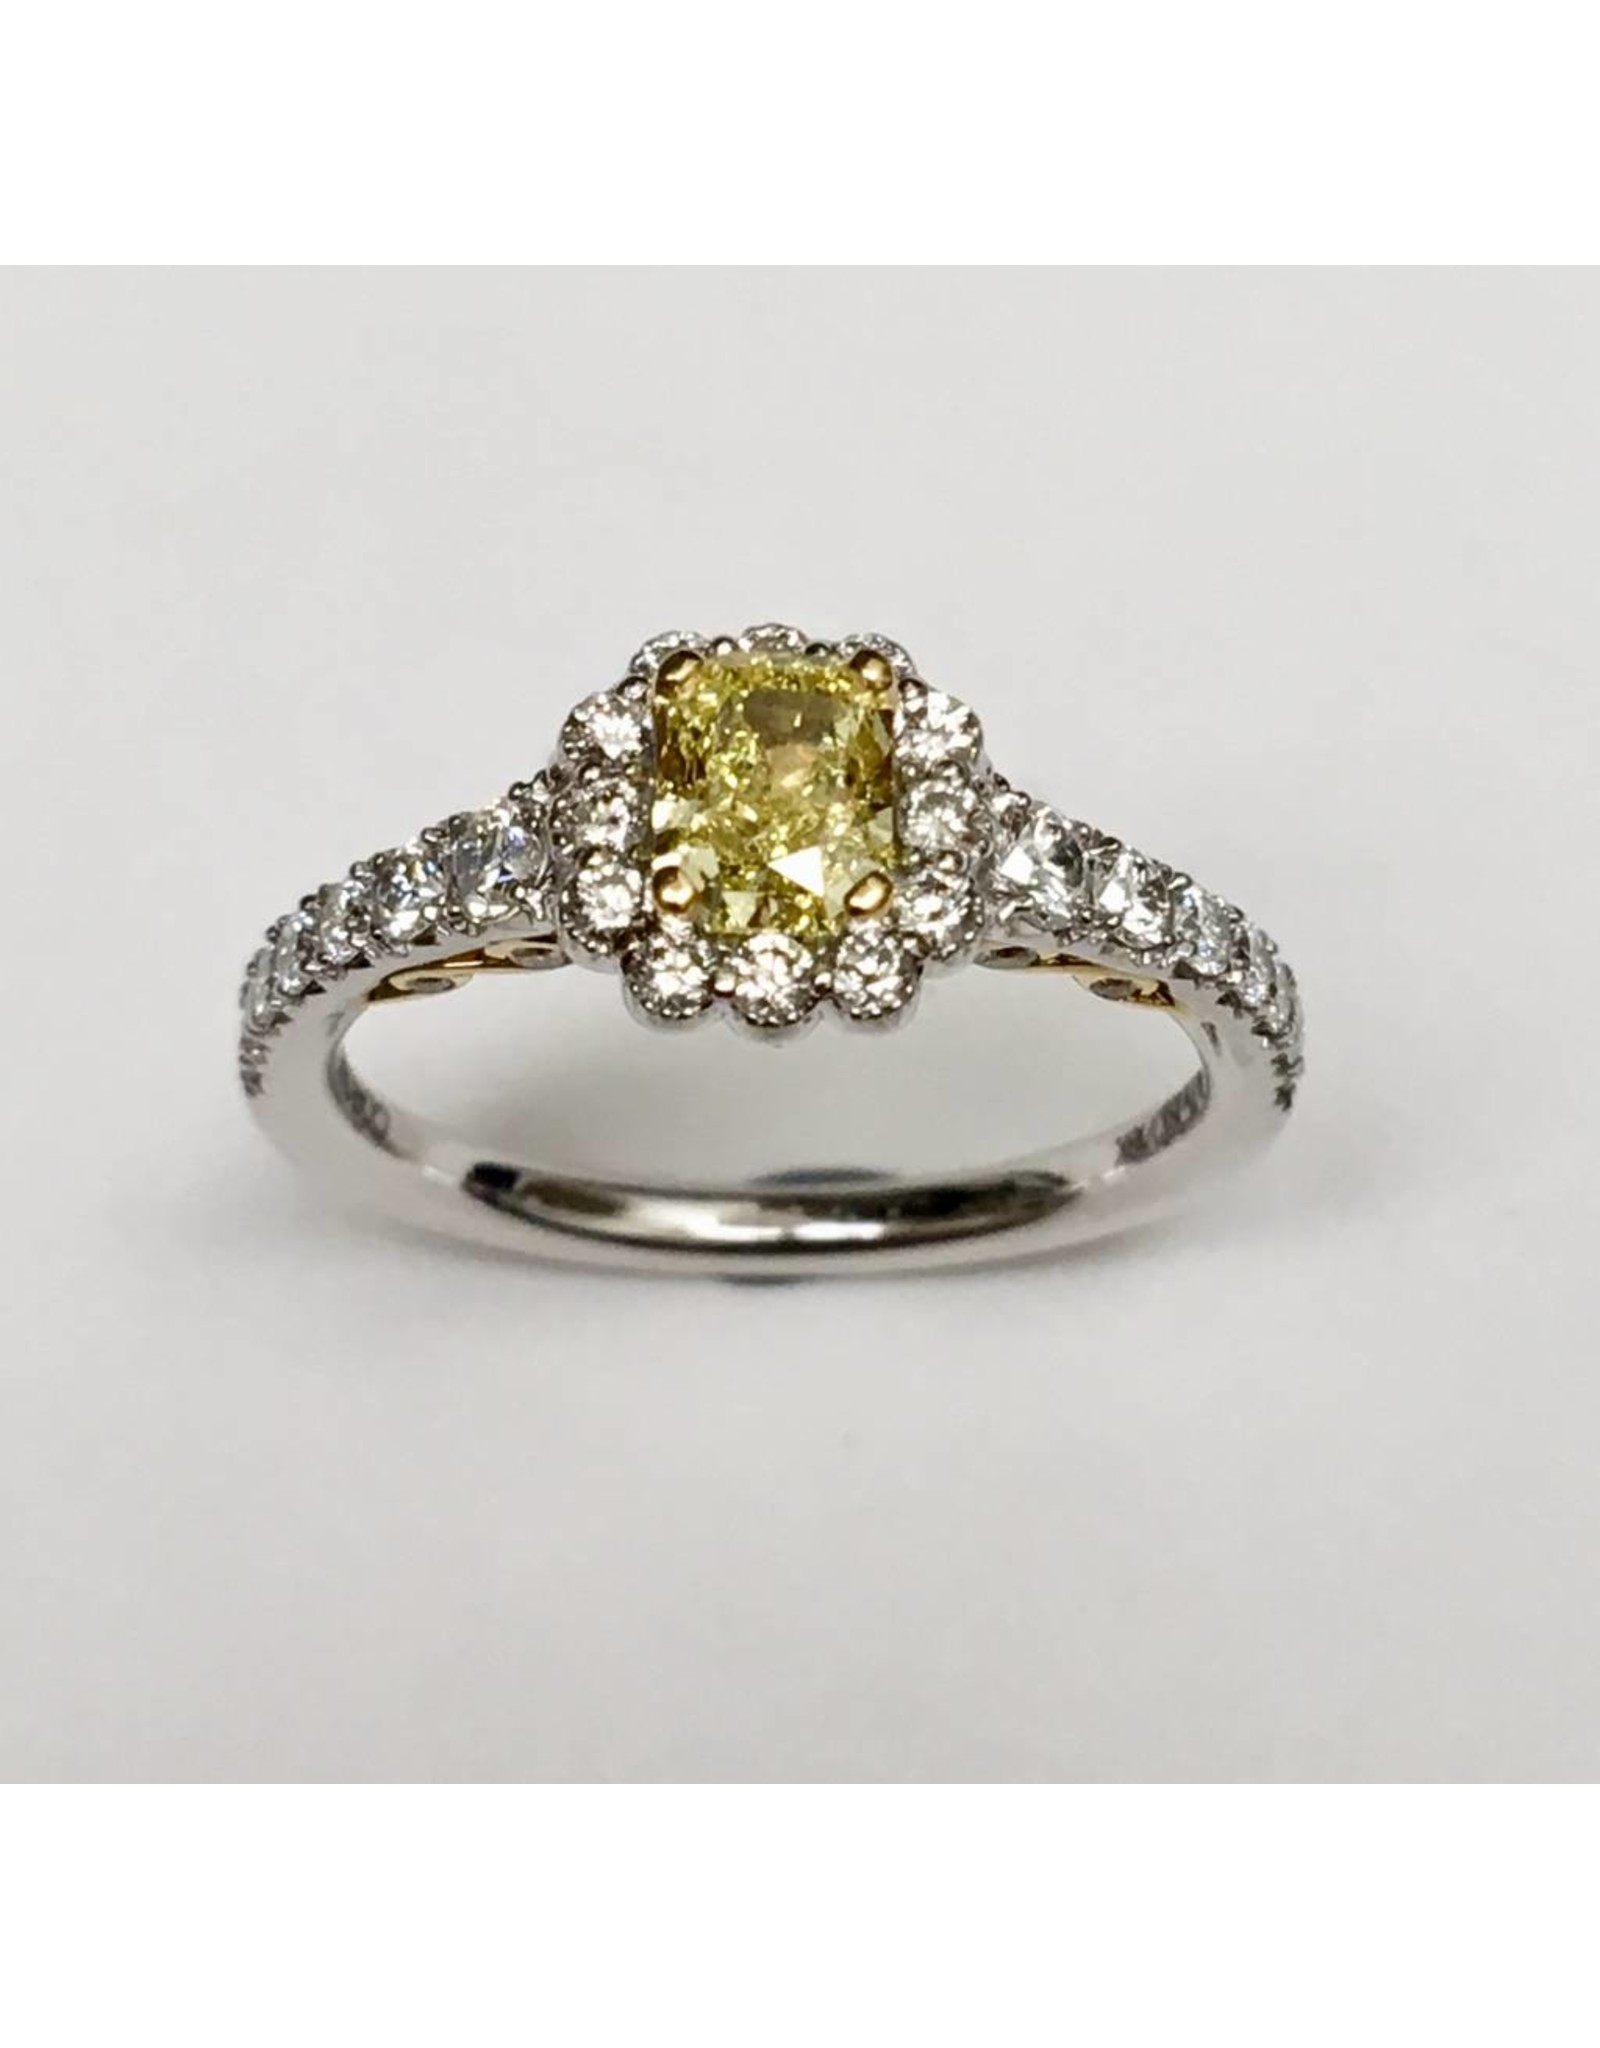 Fancy Yellow Canadian Diamond Halo (1.15ctw) 18KWY